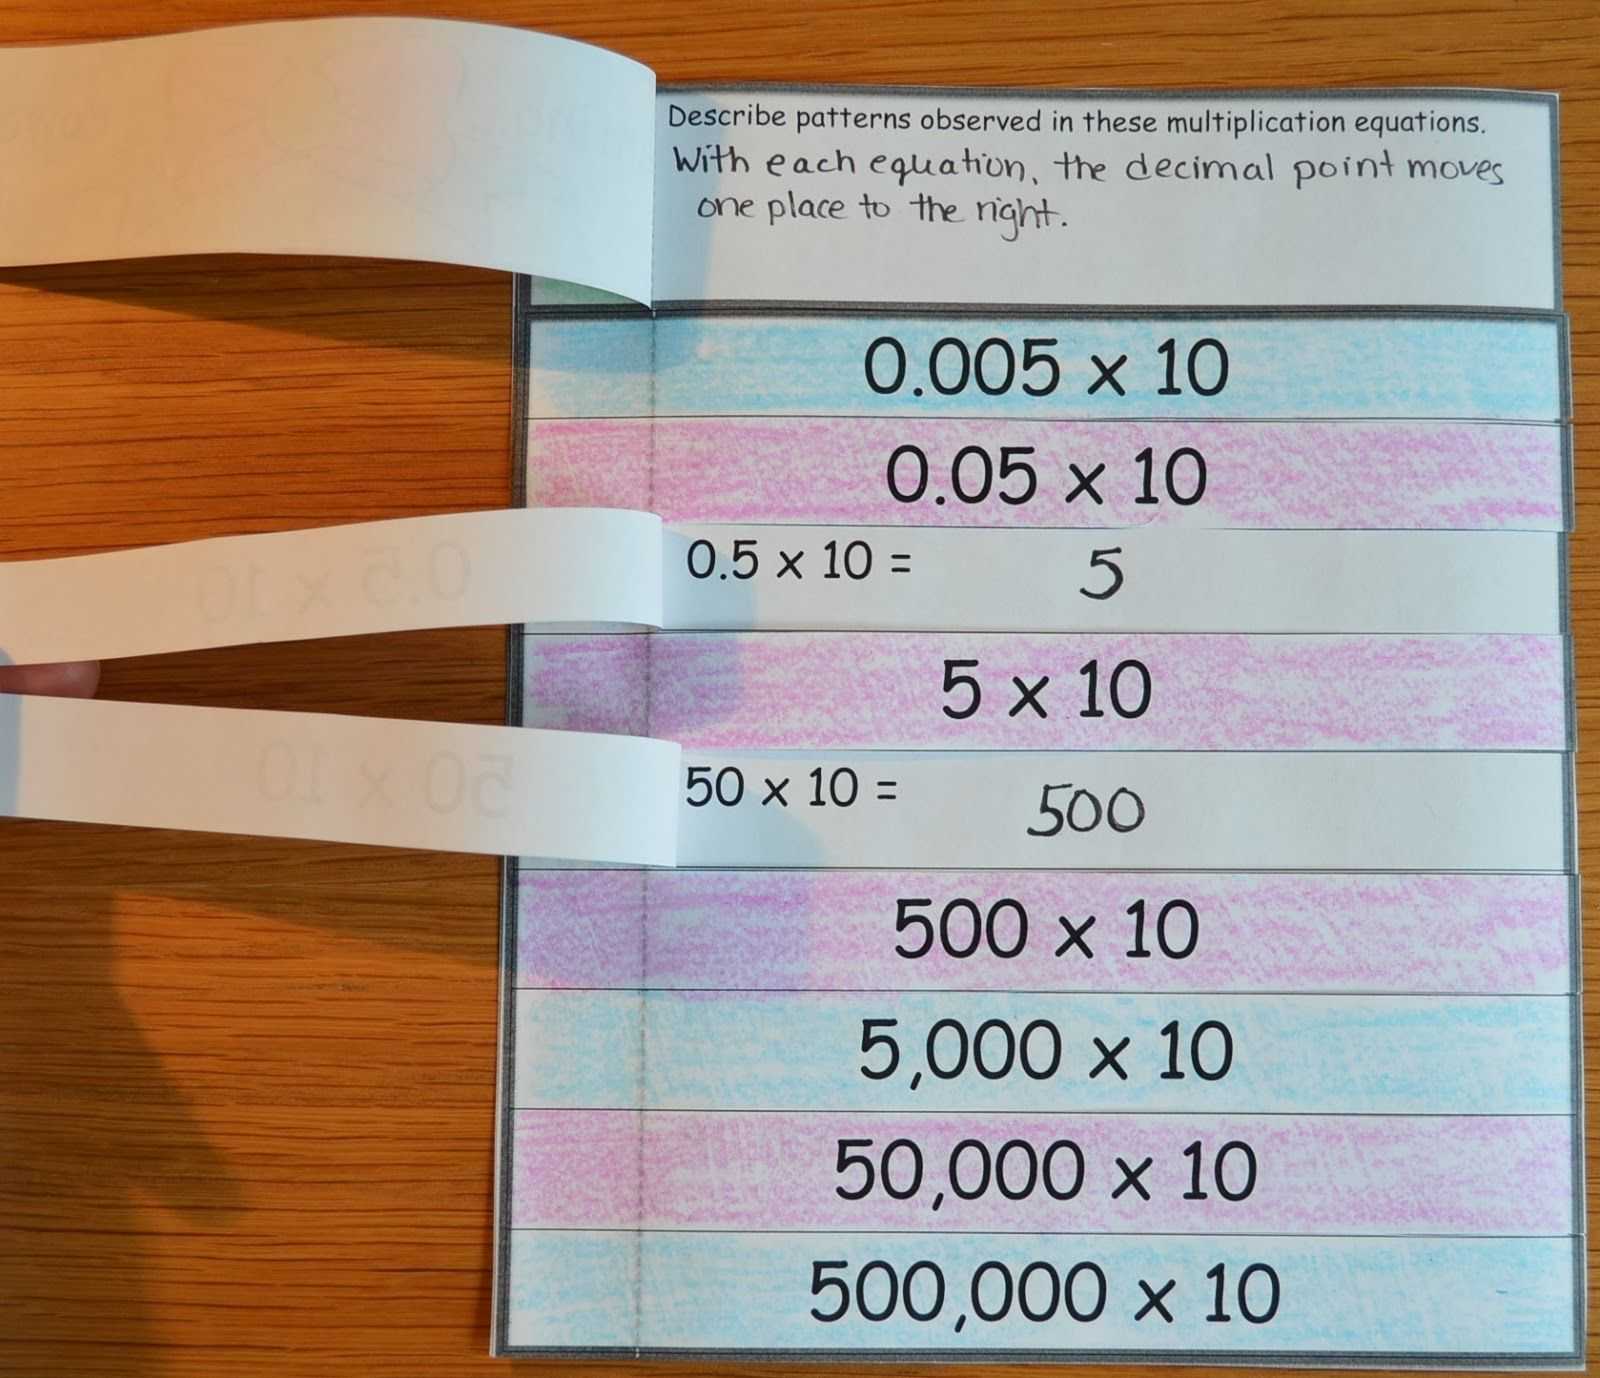 hight resolution of powers of 10 flap books use to investigate what happens when a number is either multiplied or divided by 10 again and again place in math notebook if